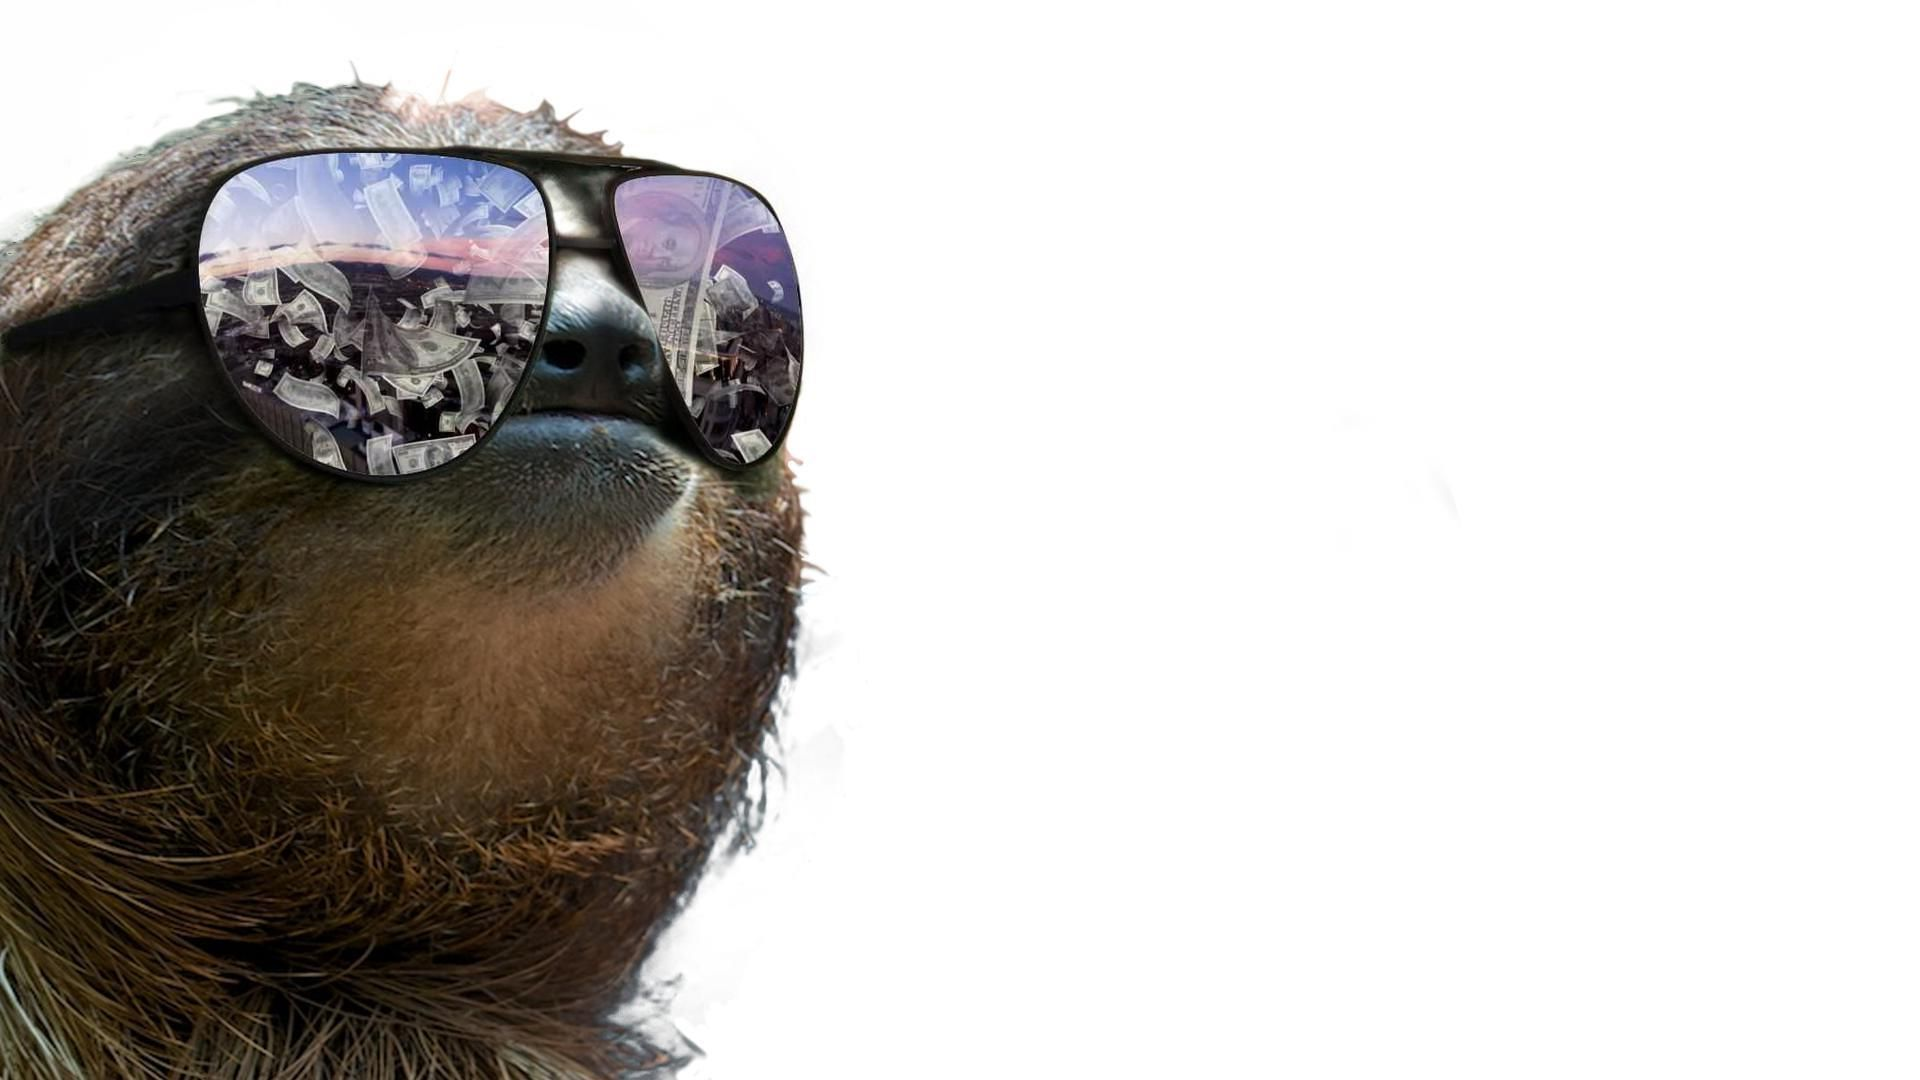 Sloth download free wallpapers for pc in hd